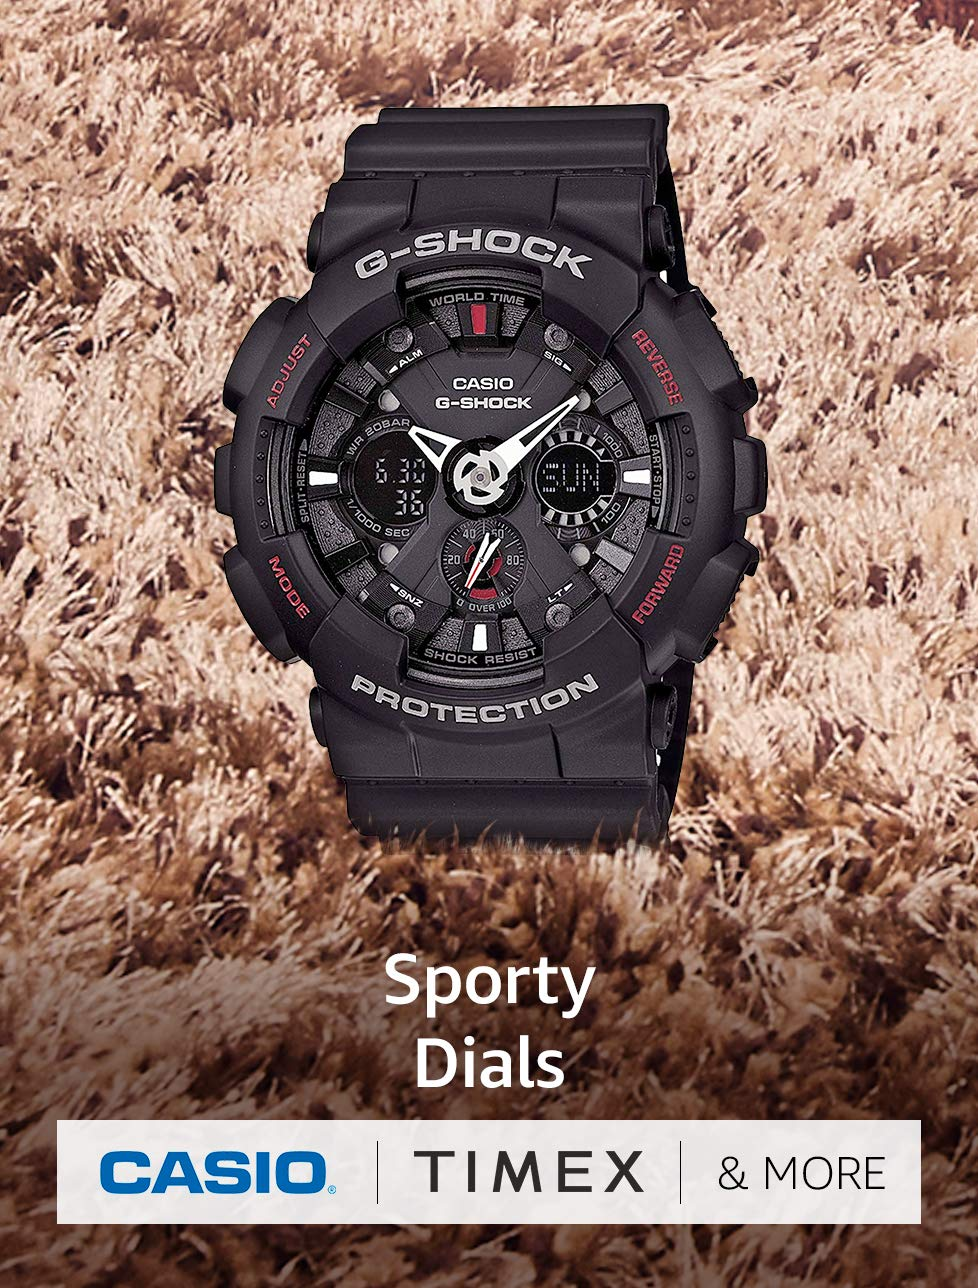 Sporty Dials